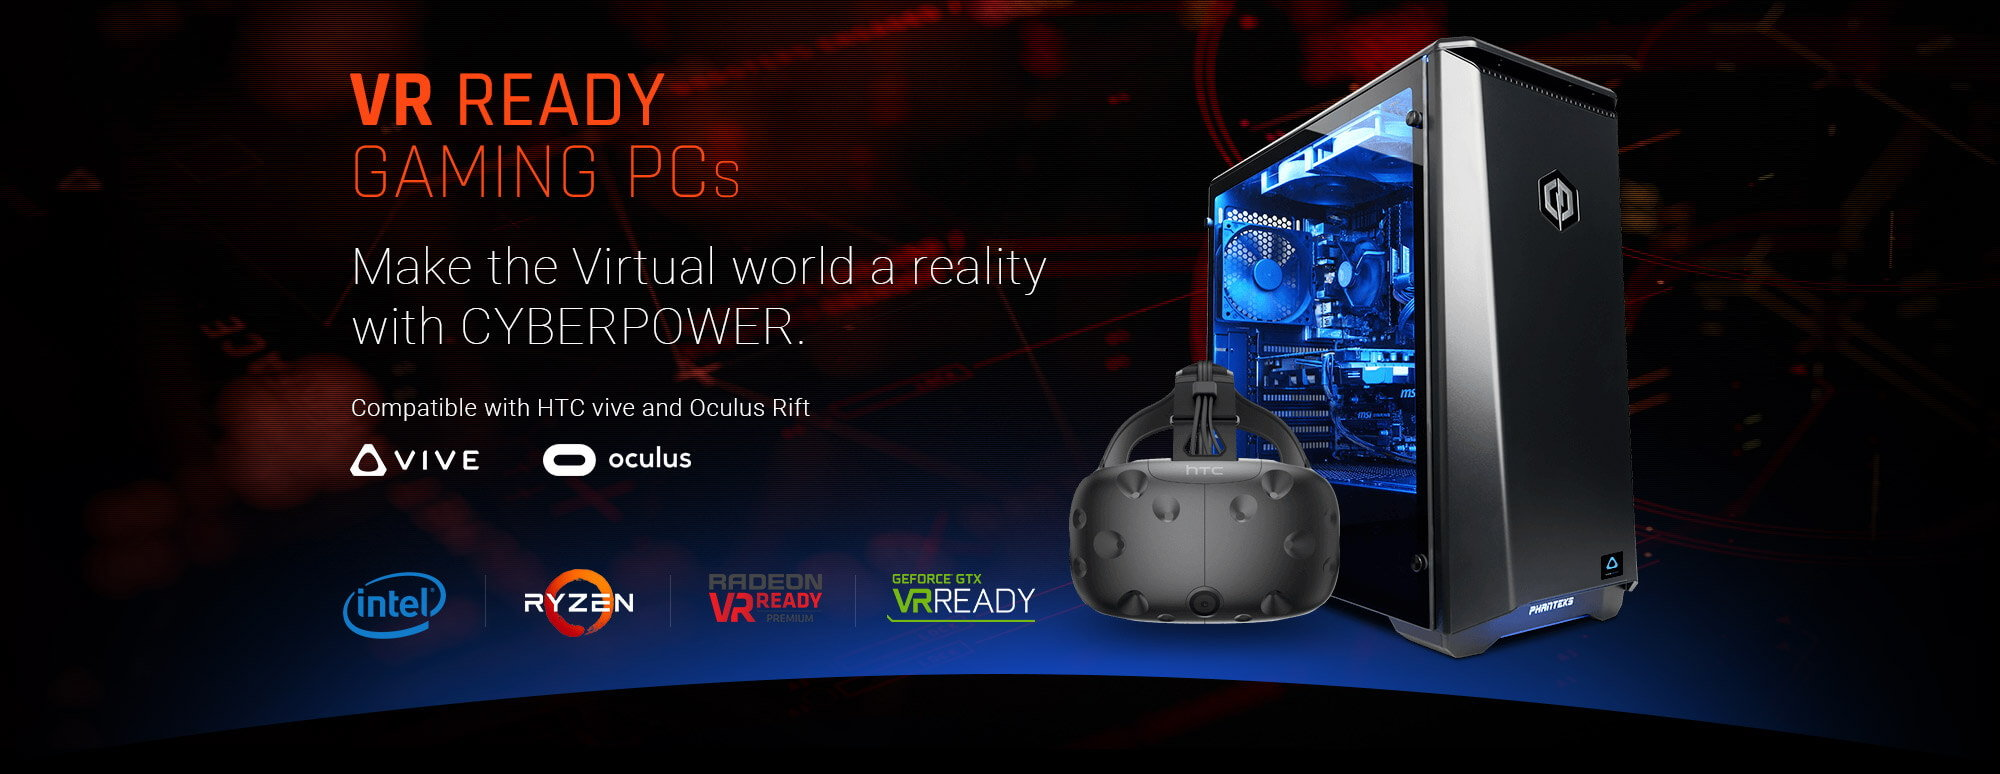 VR Ready Gaming PCs